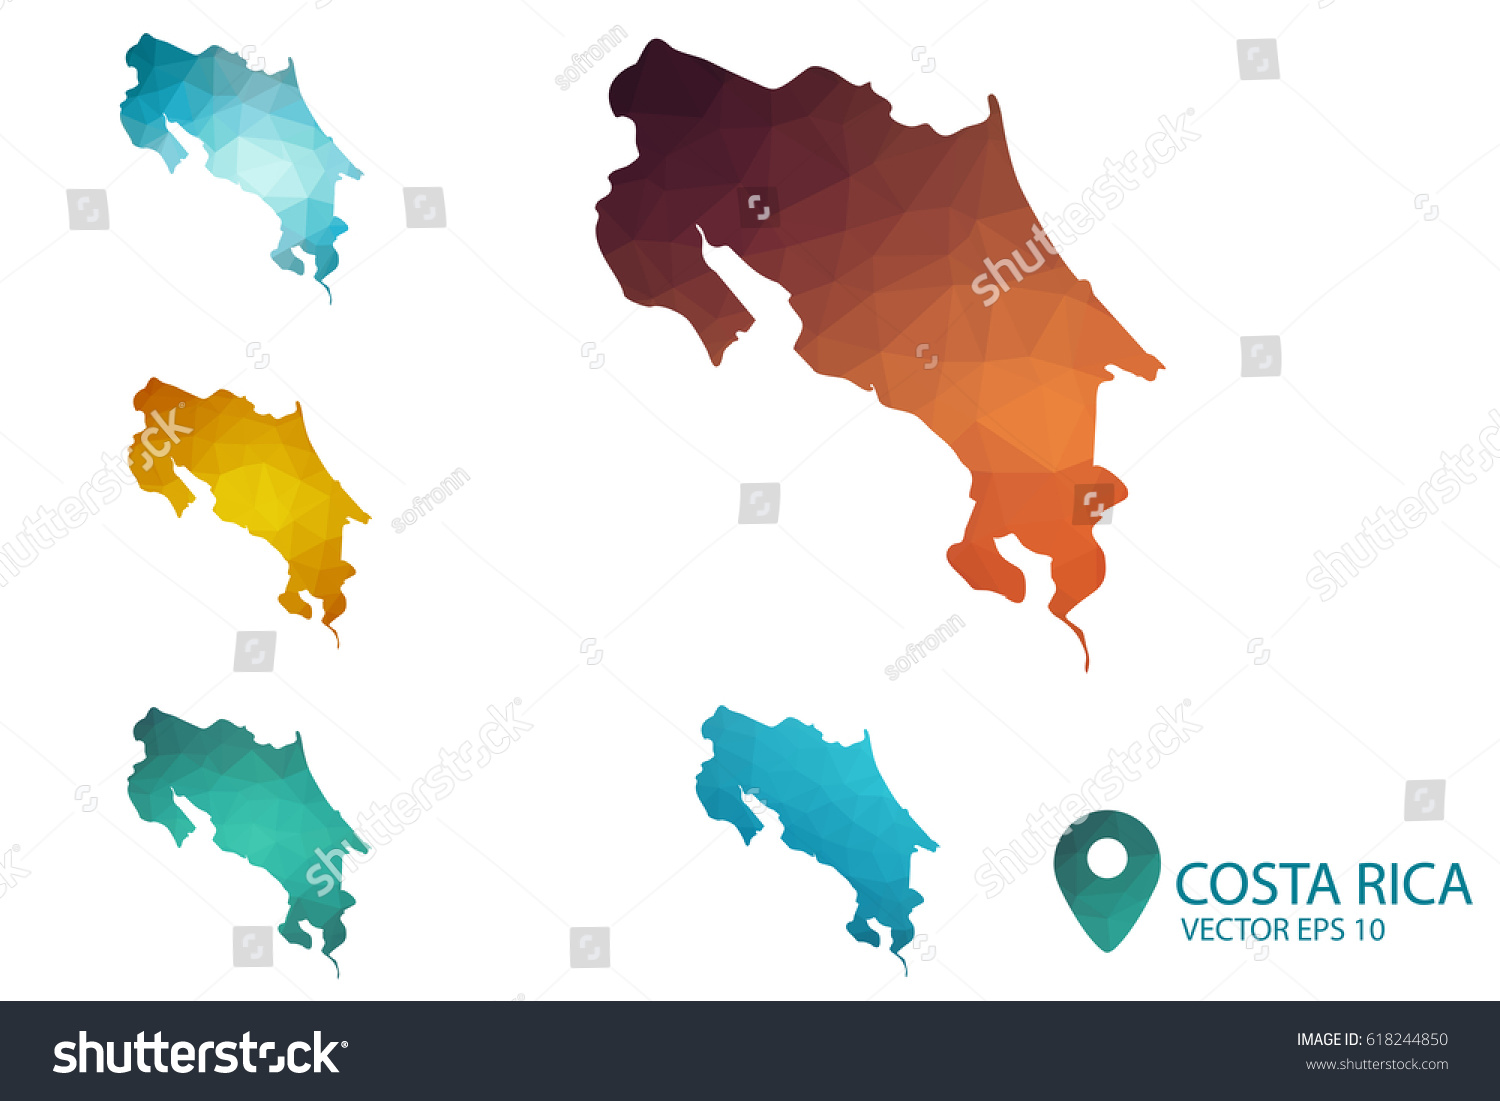 Set costa rica maps bright gradient stock vector 618244850 set of costa rica maps bright gradient map of country in low poly style gumiabroncs Image collections